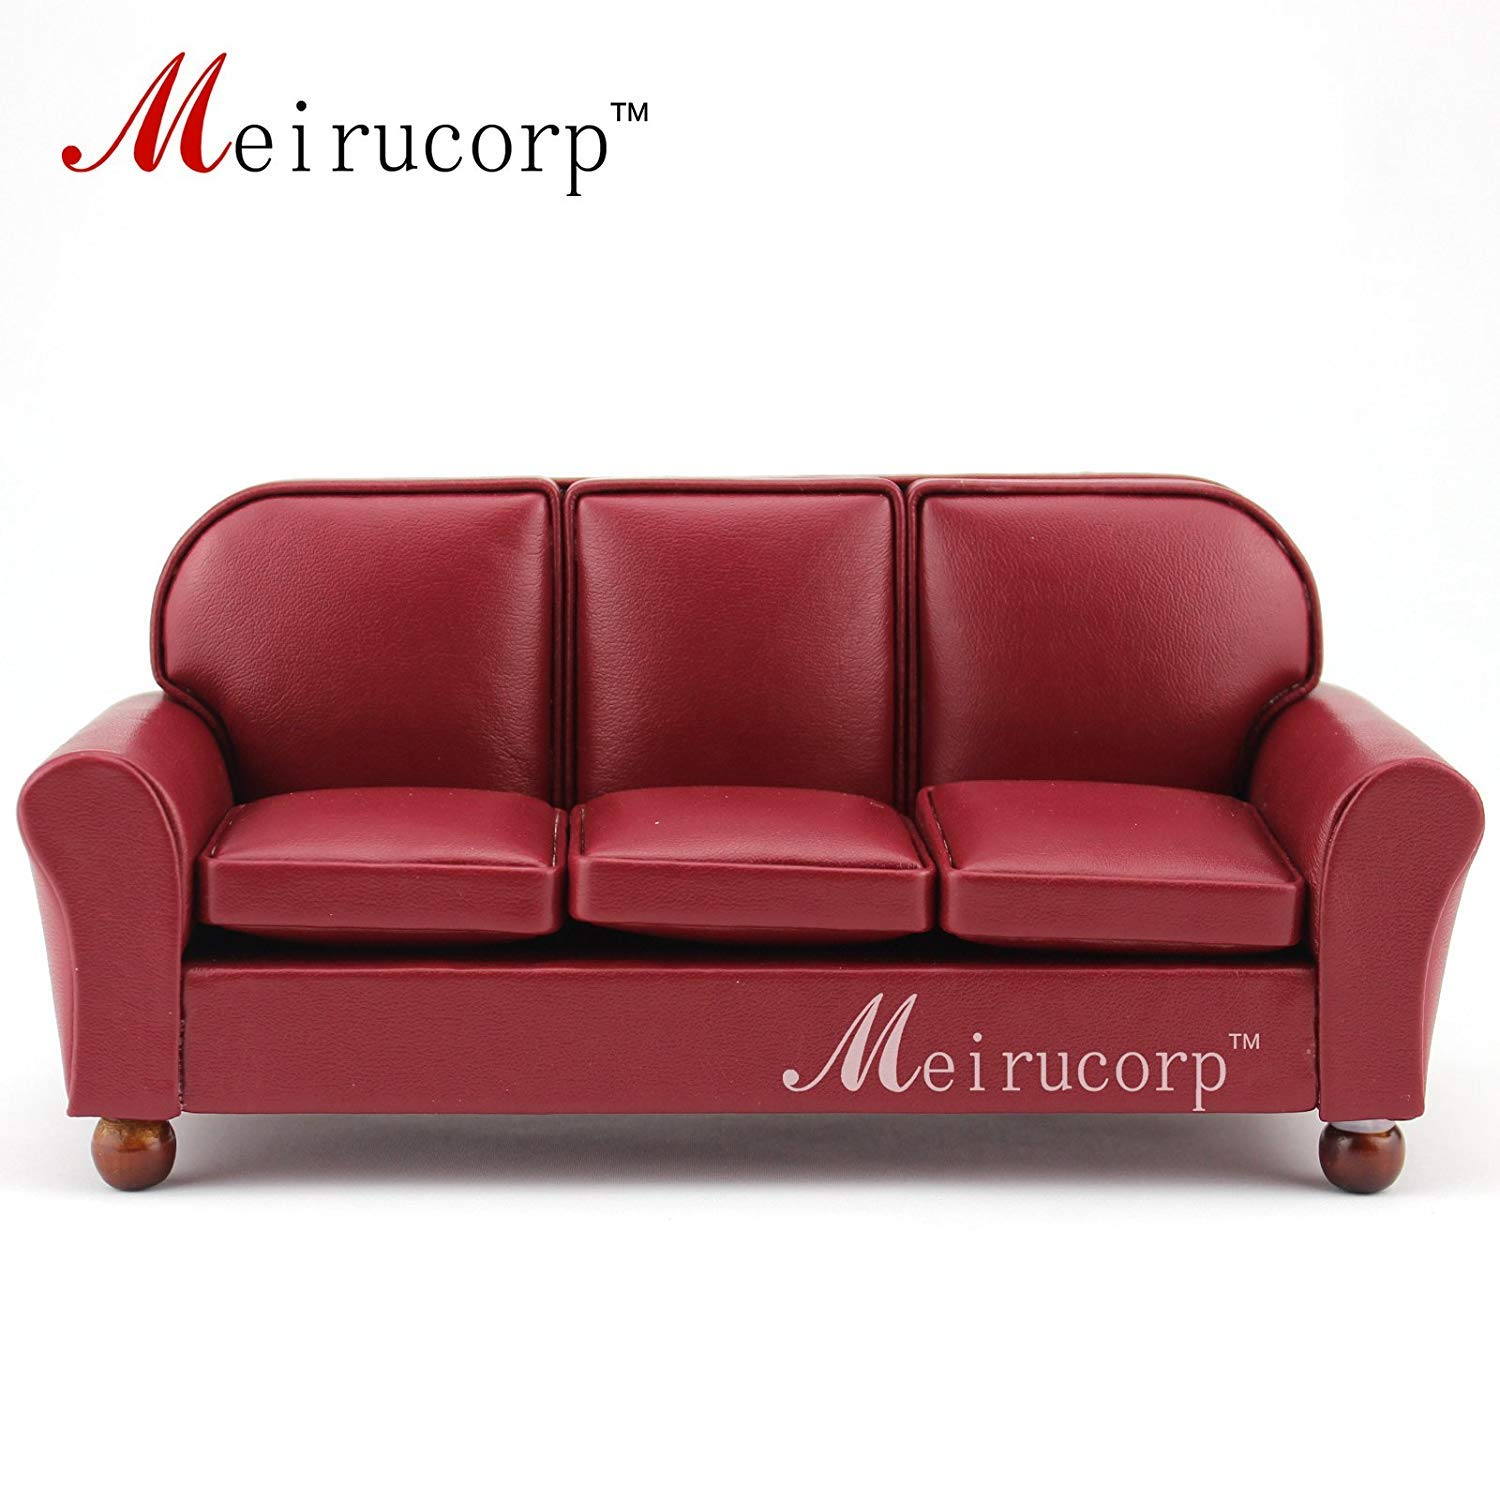 Dolls Furniture Fine 1 12 Scale Miniature Well Made Red Living Room Sofa